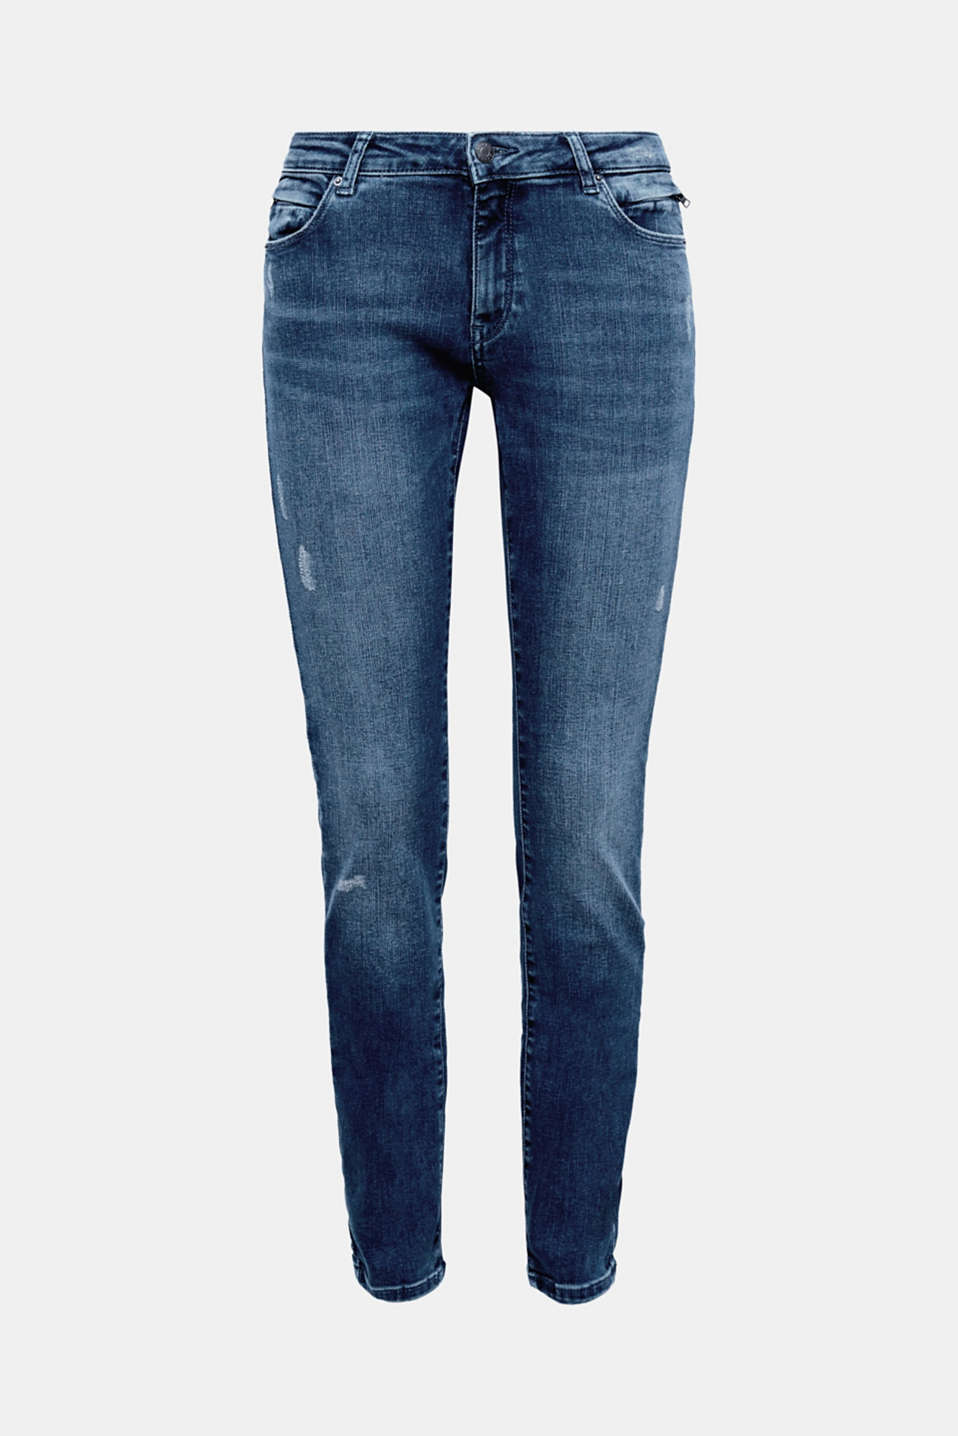 the two additional zip pockets accentuate the cool style of these slim-fitting stretch jeans!